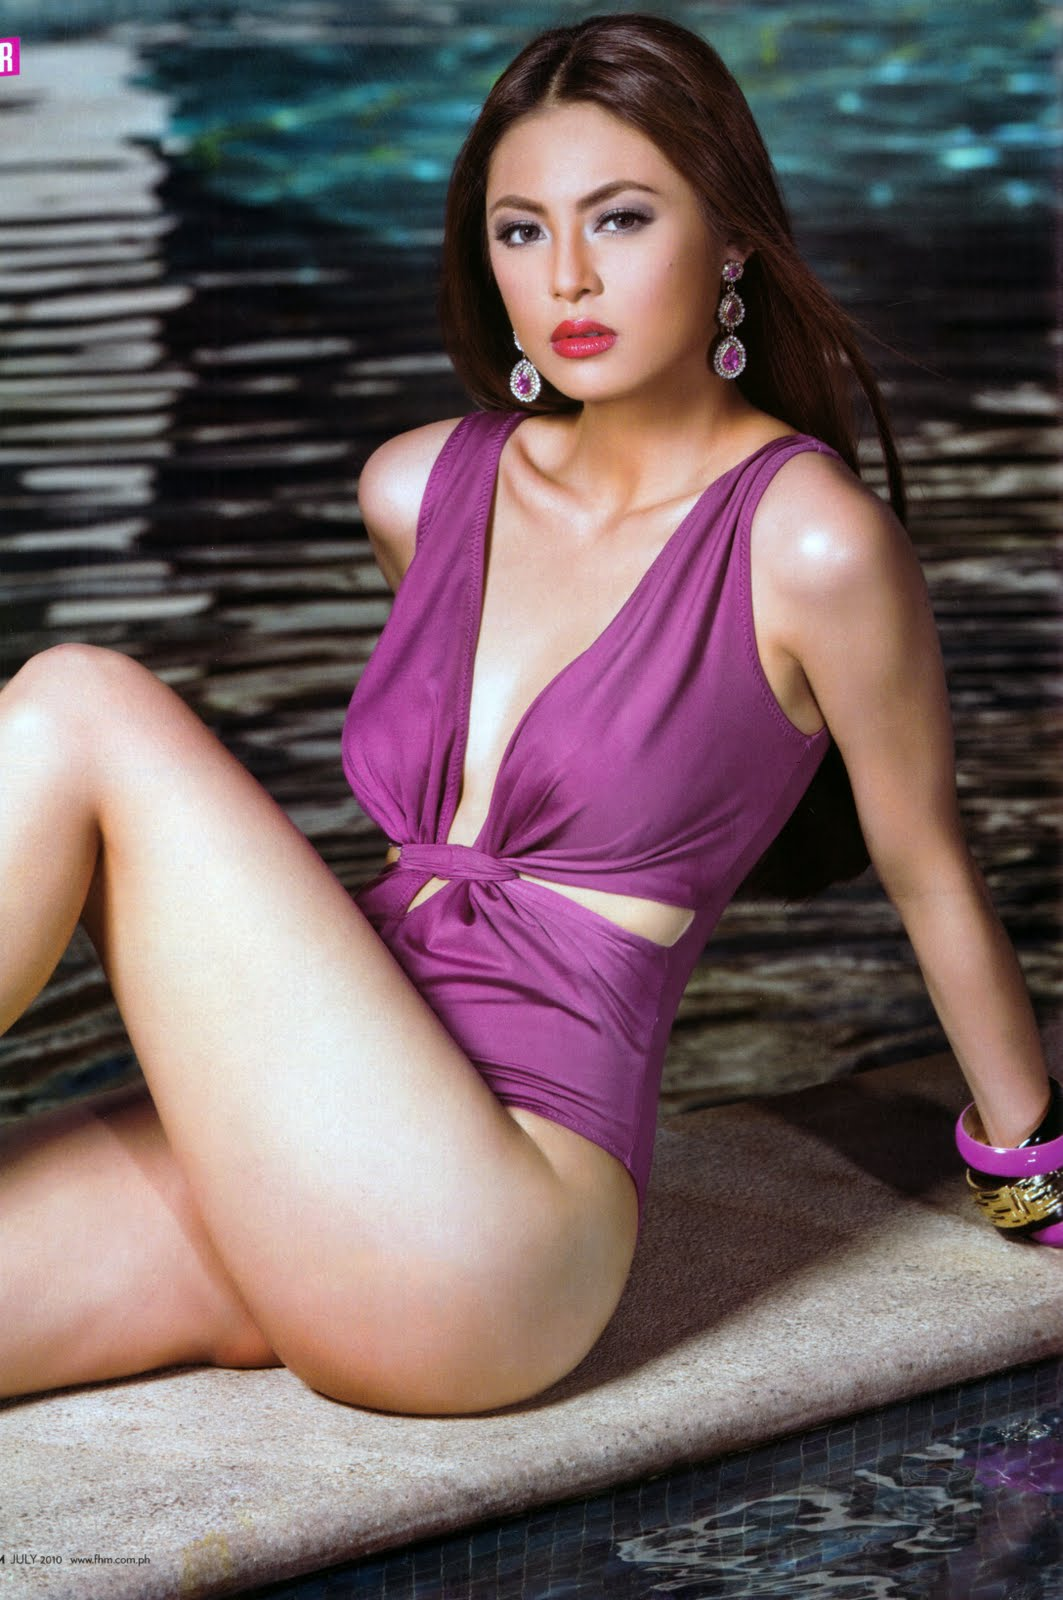 Naked picture of angel locsin